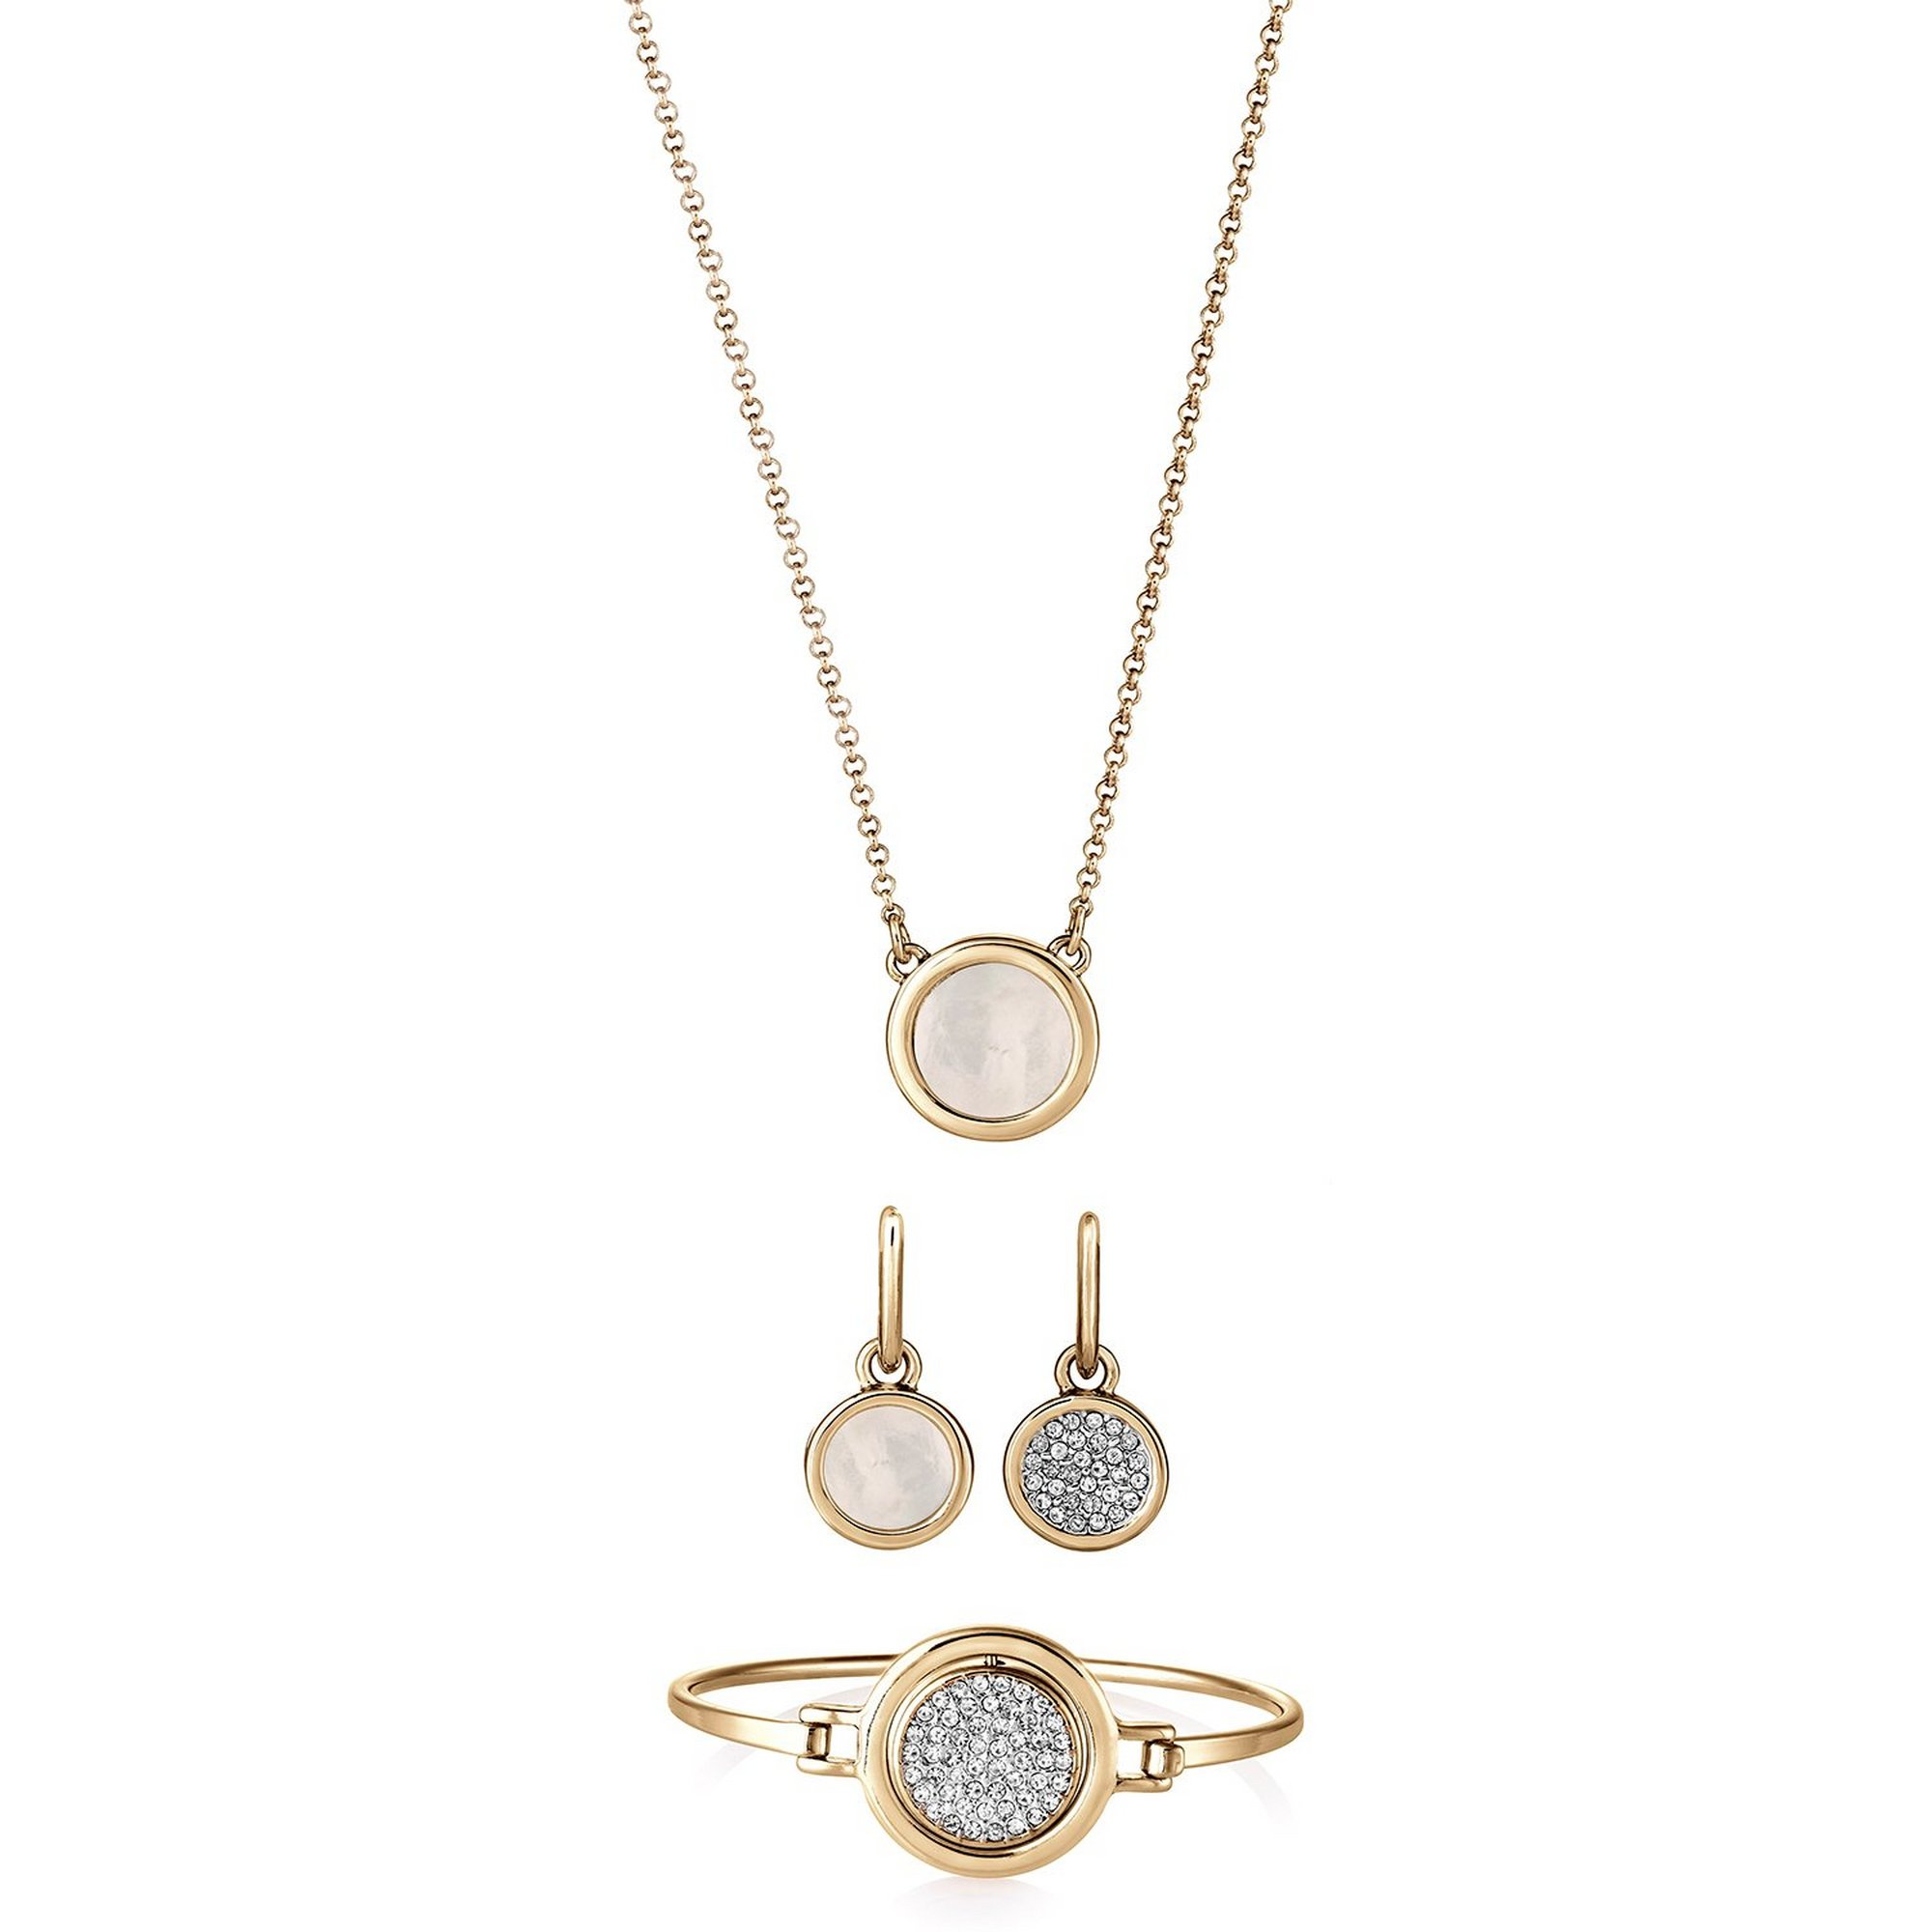 Image of Buckley London Gold Plated Eclipse Set